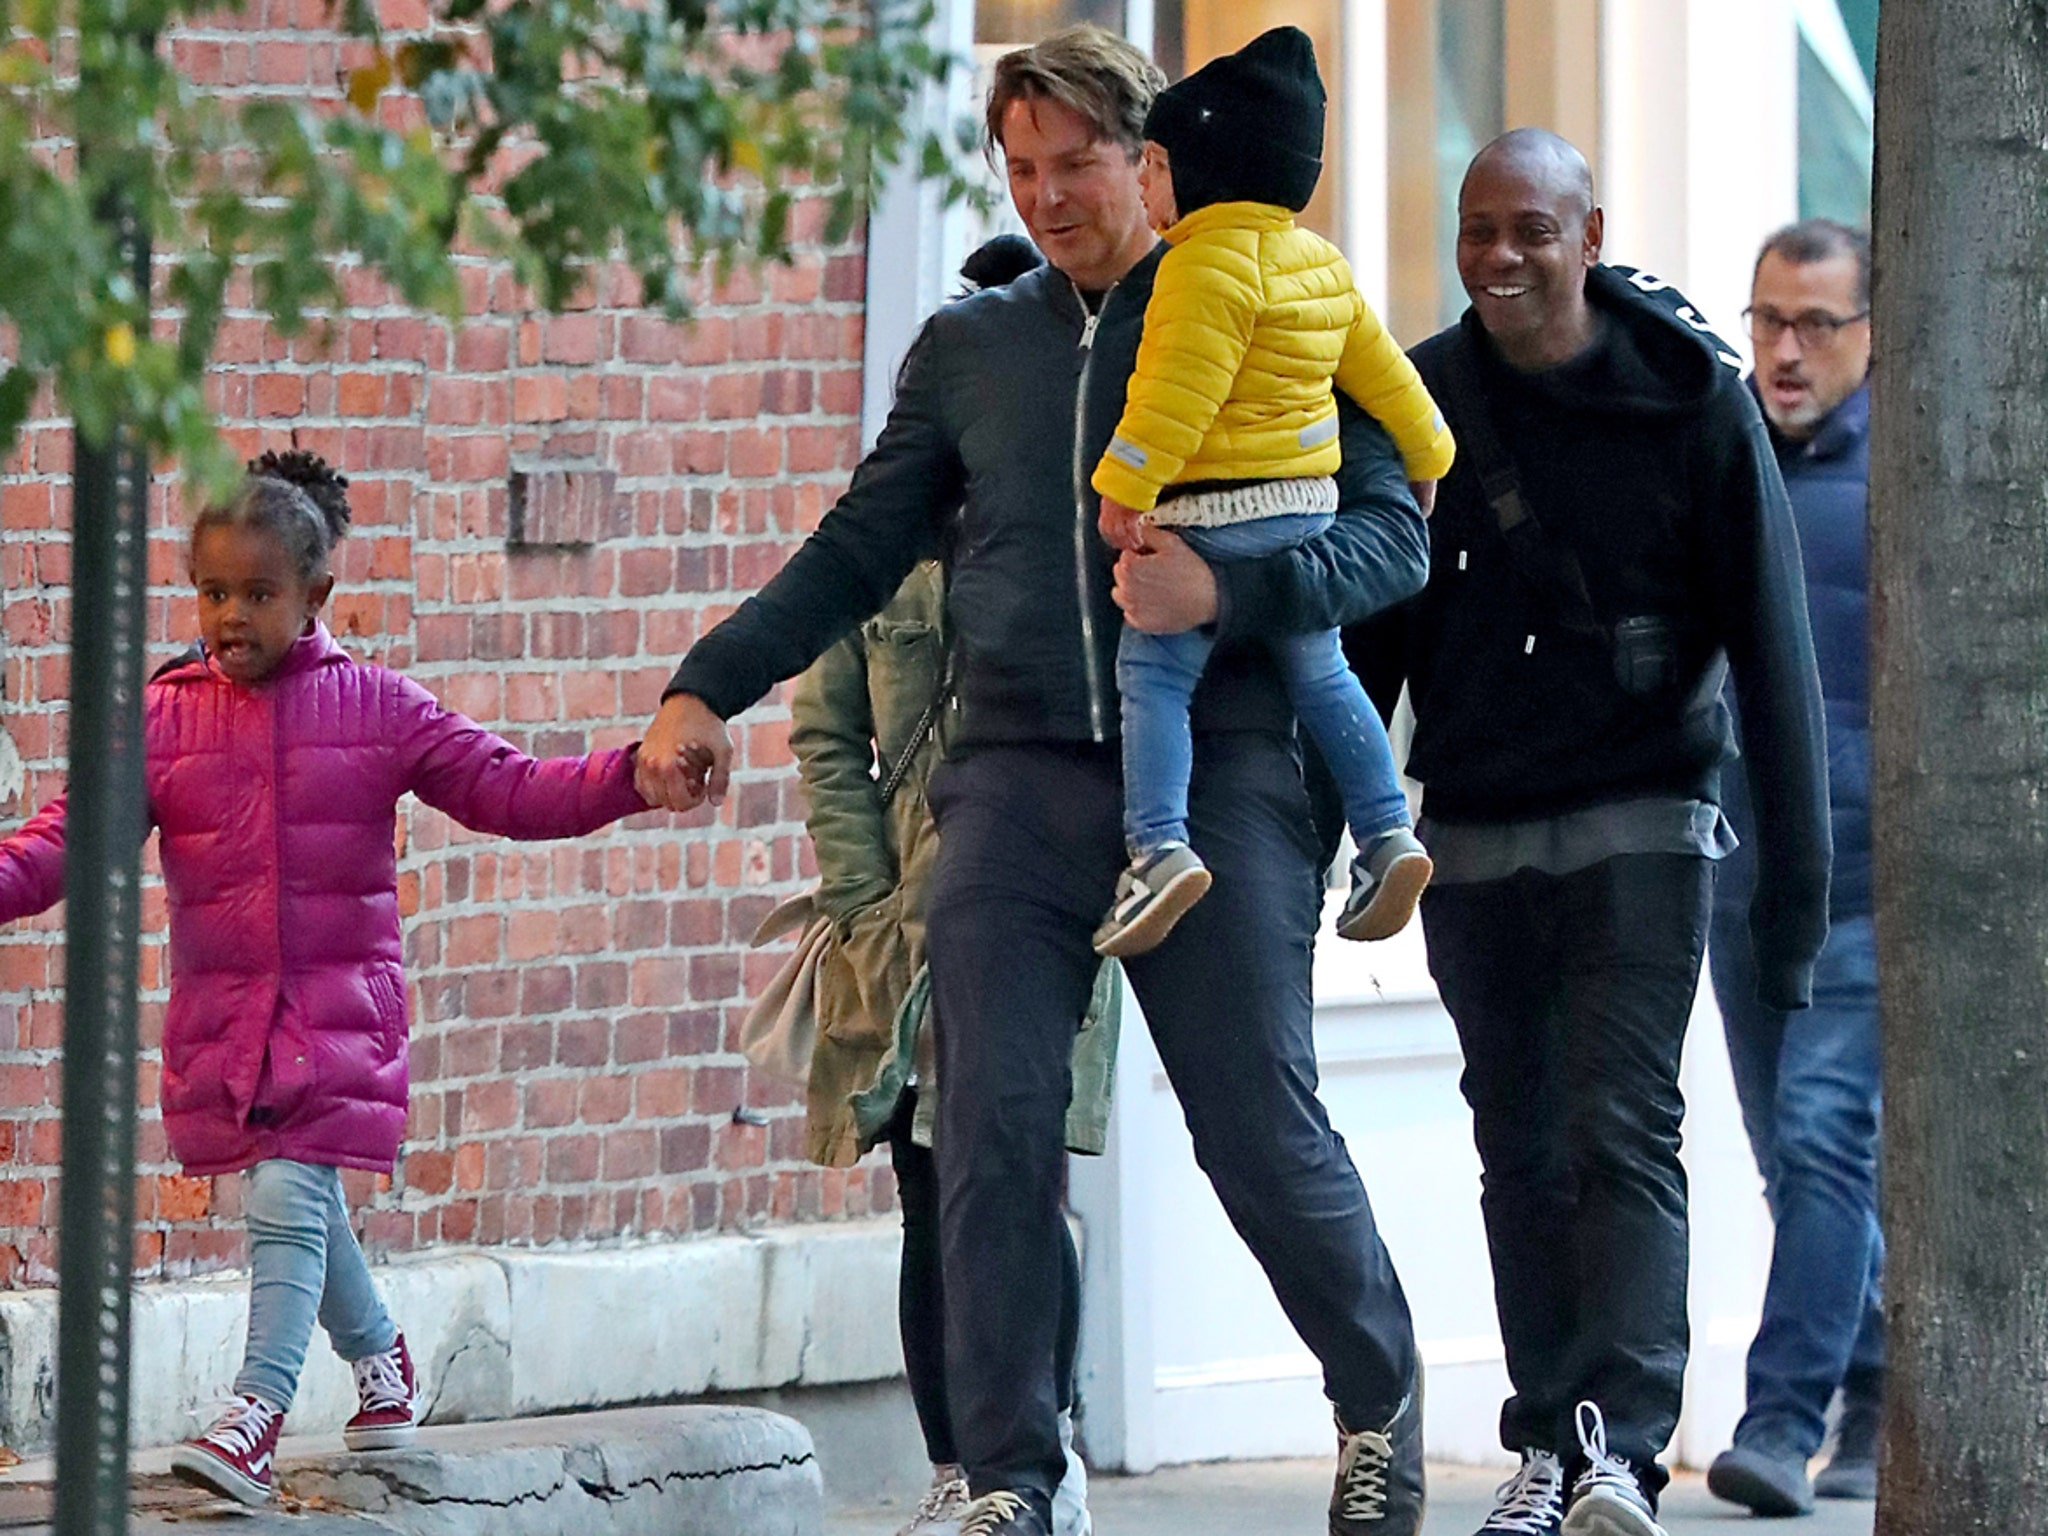 bradley cooper hangs out with dave chappelle in nyc bradley cooper hangs out with dave